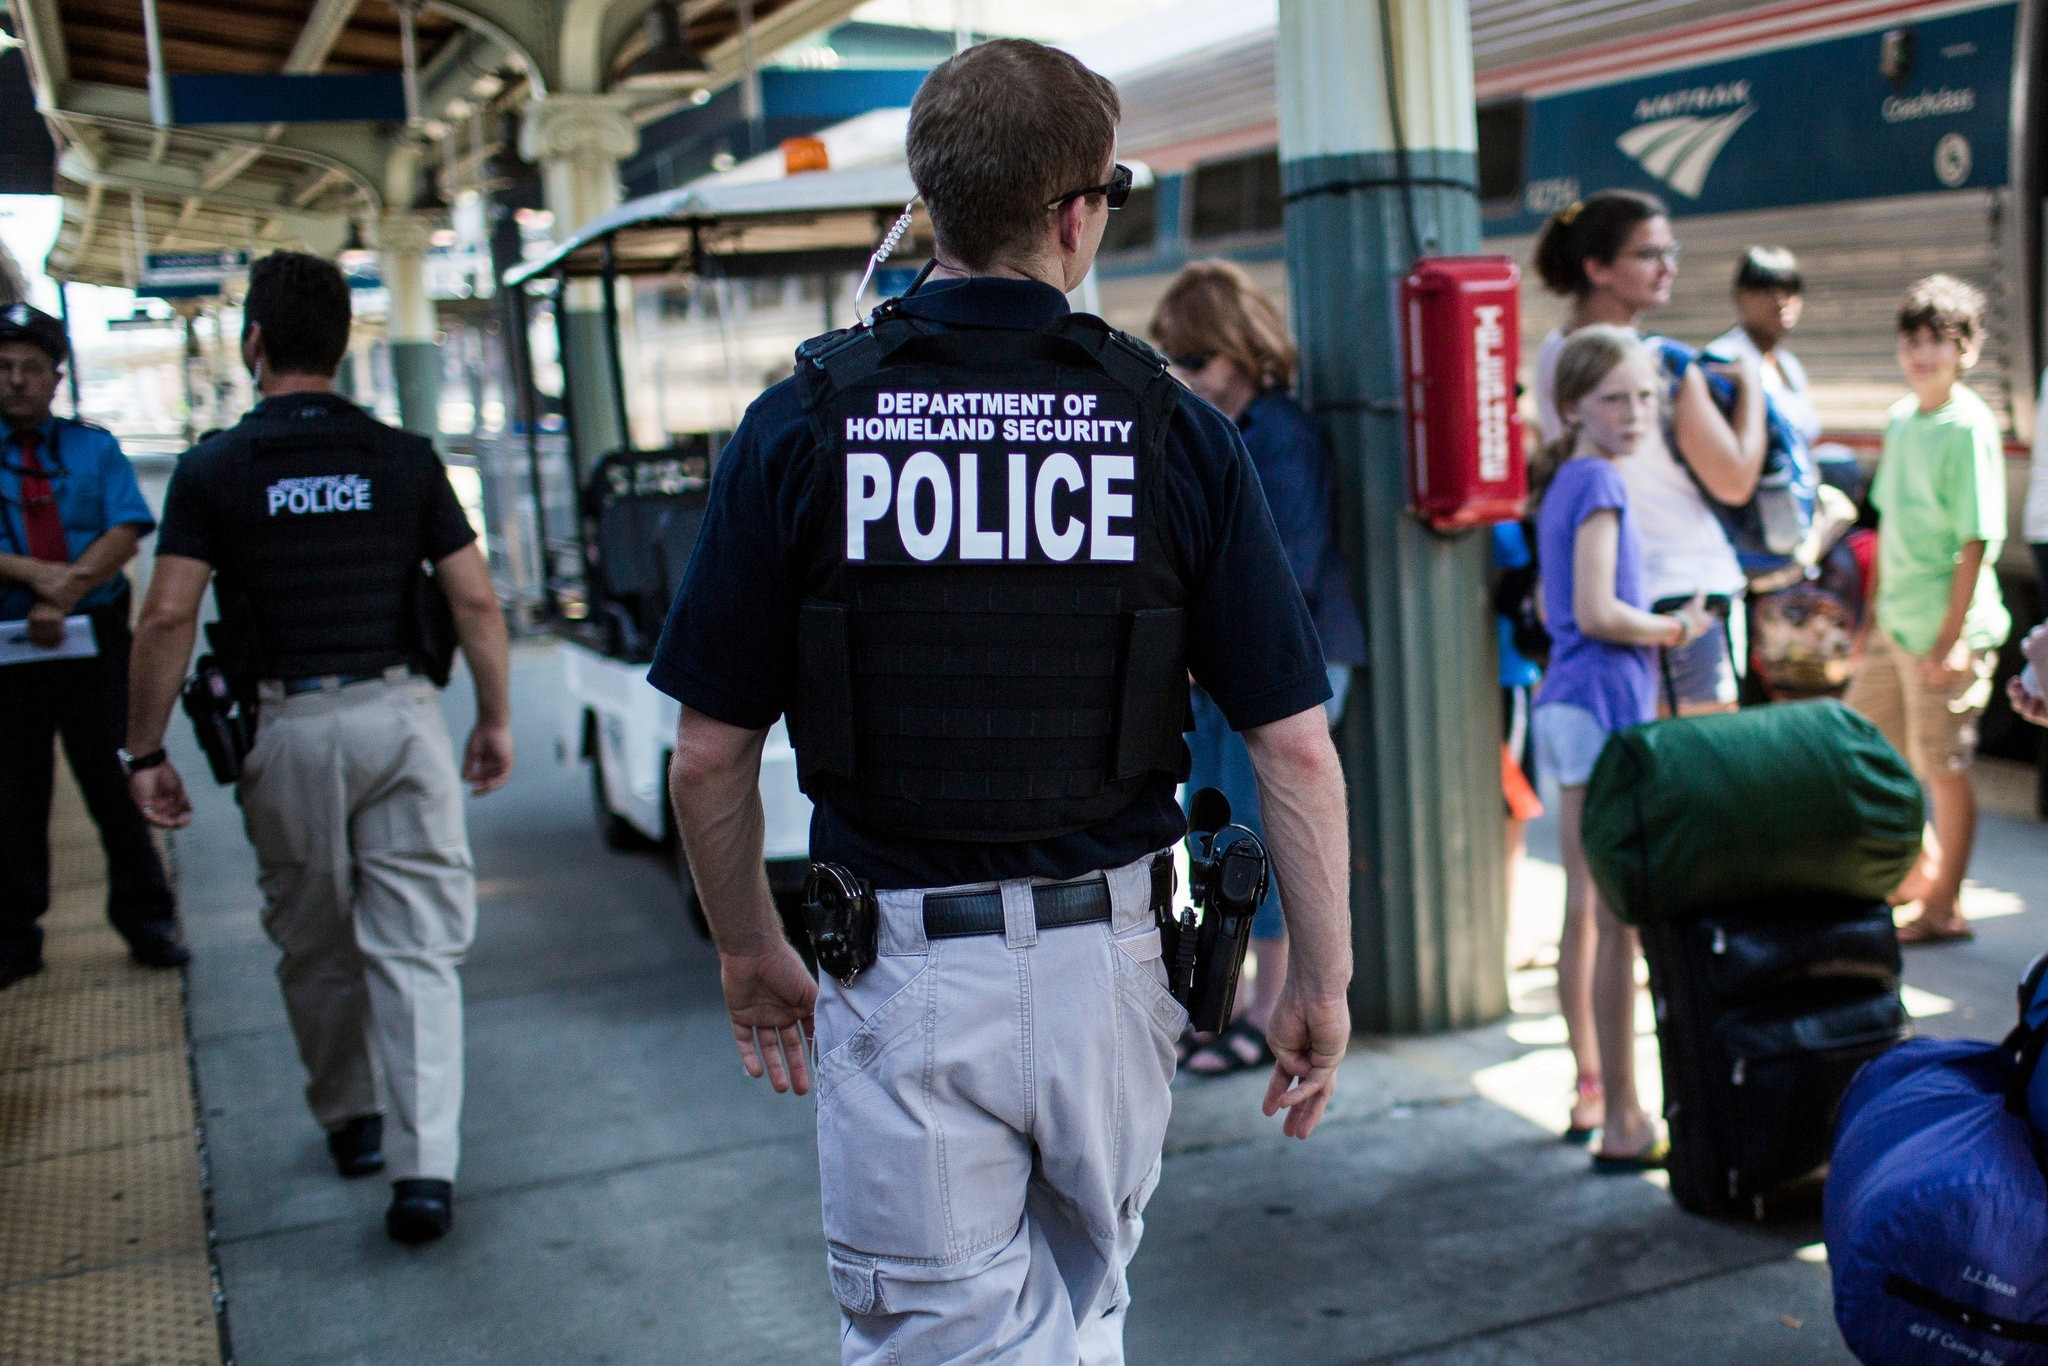 Some of the TSA's VIPR teams, normally tasked with railway security, will be making increased appearances at airports. (Photo credit: New York Times)